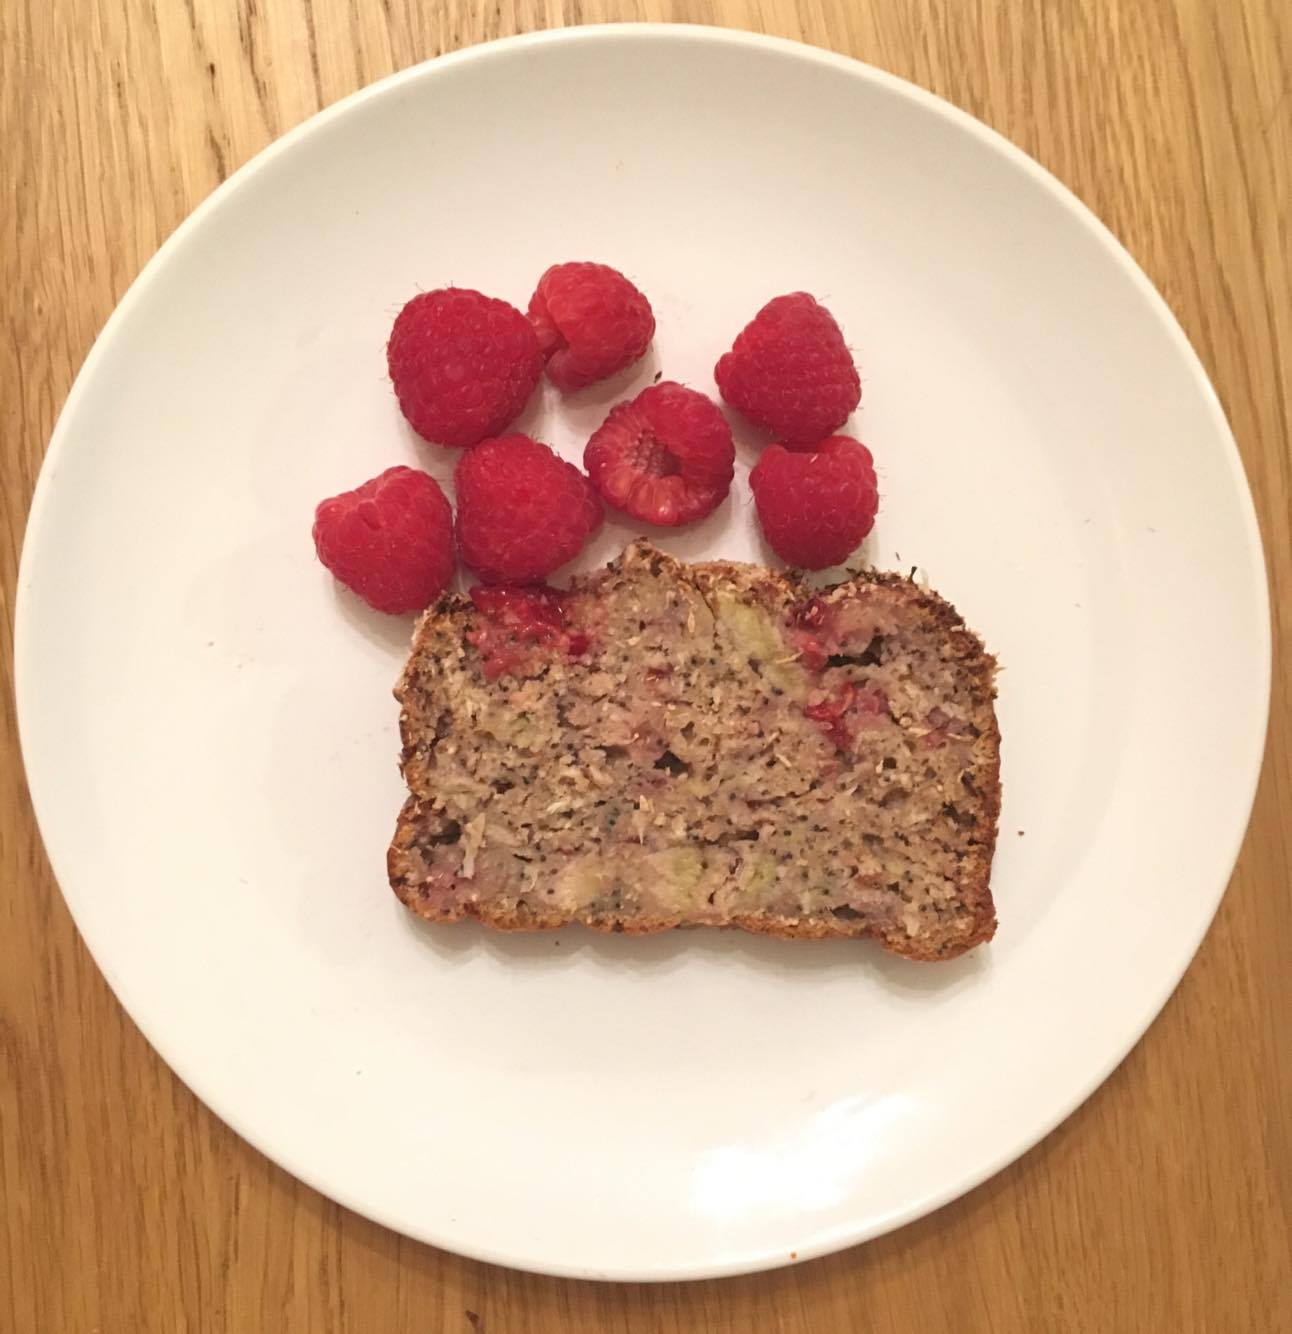 Ava's Raspberry Coconut Breakfast Loaf